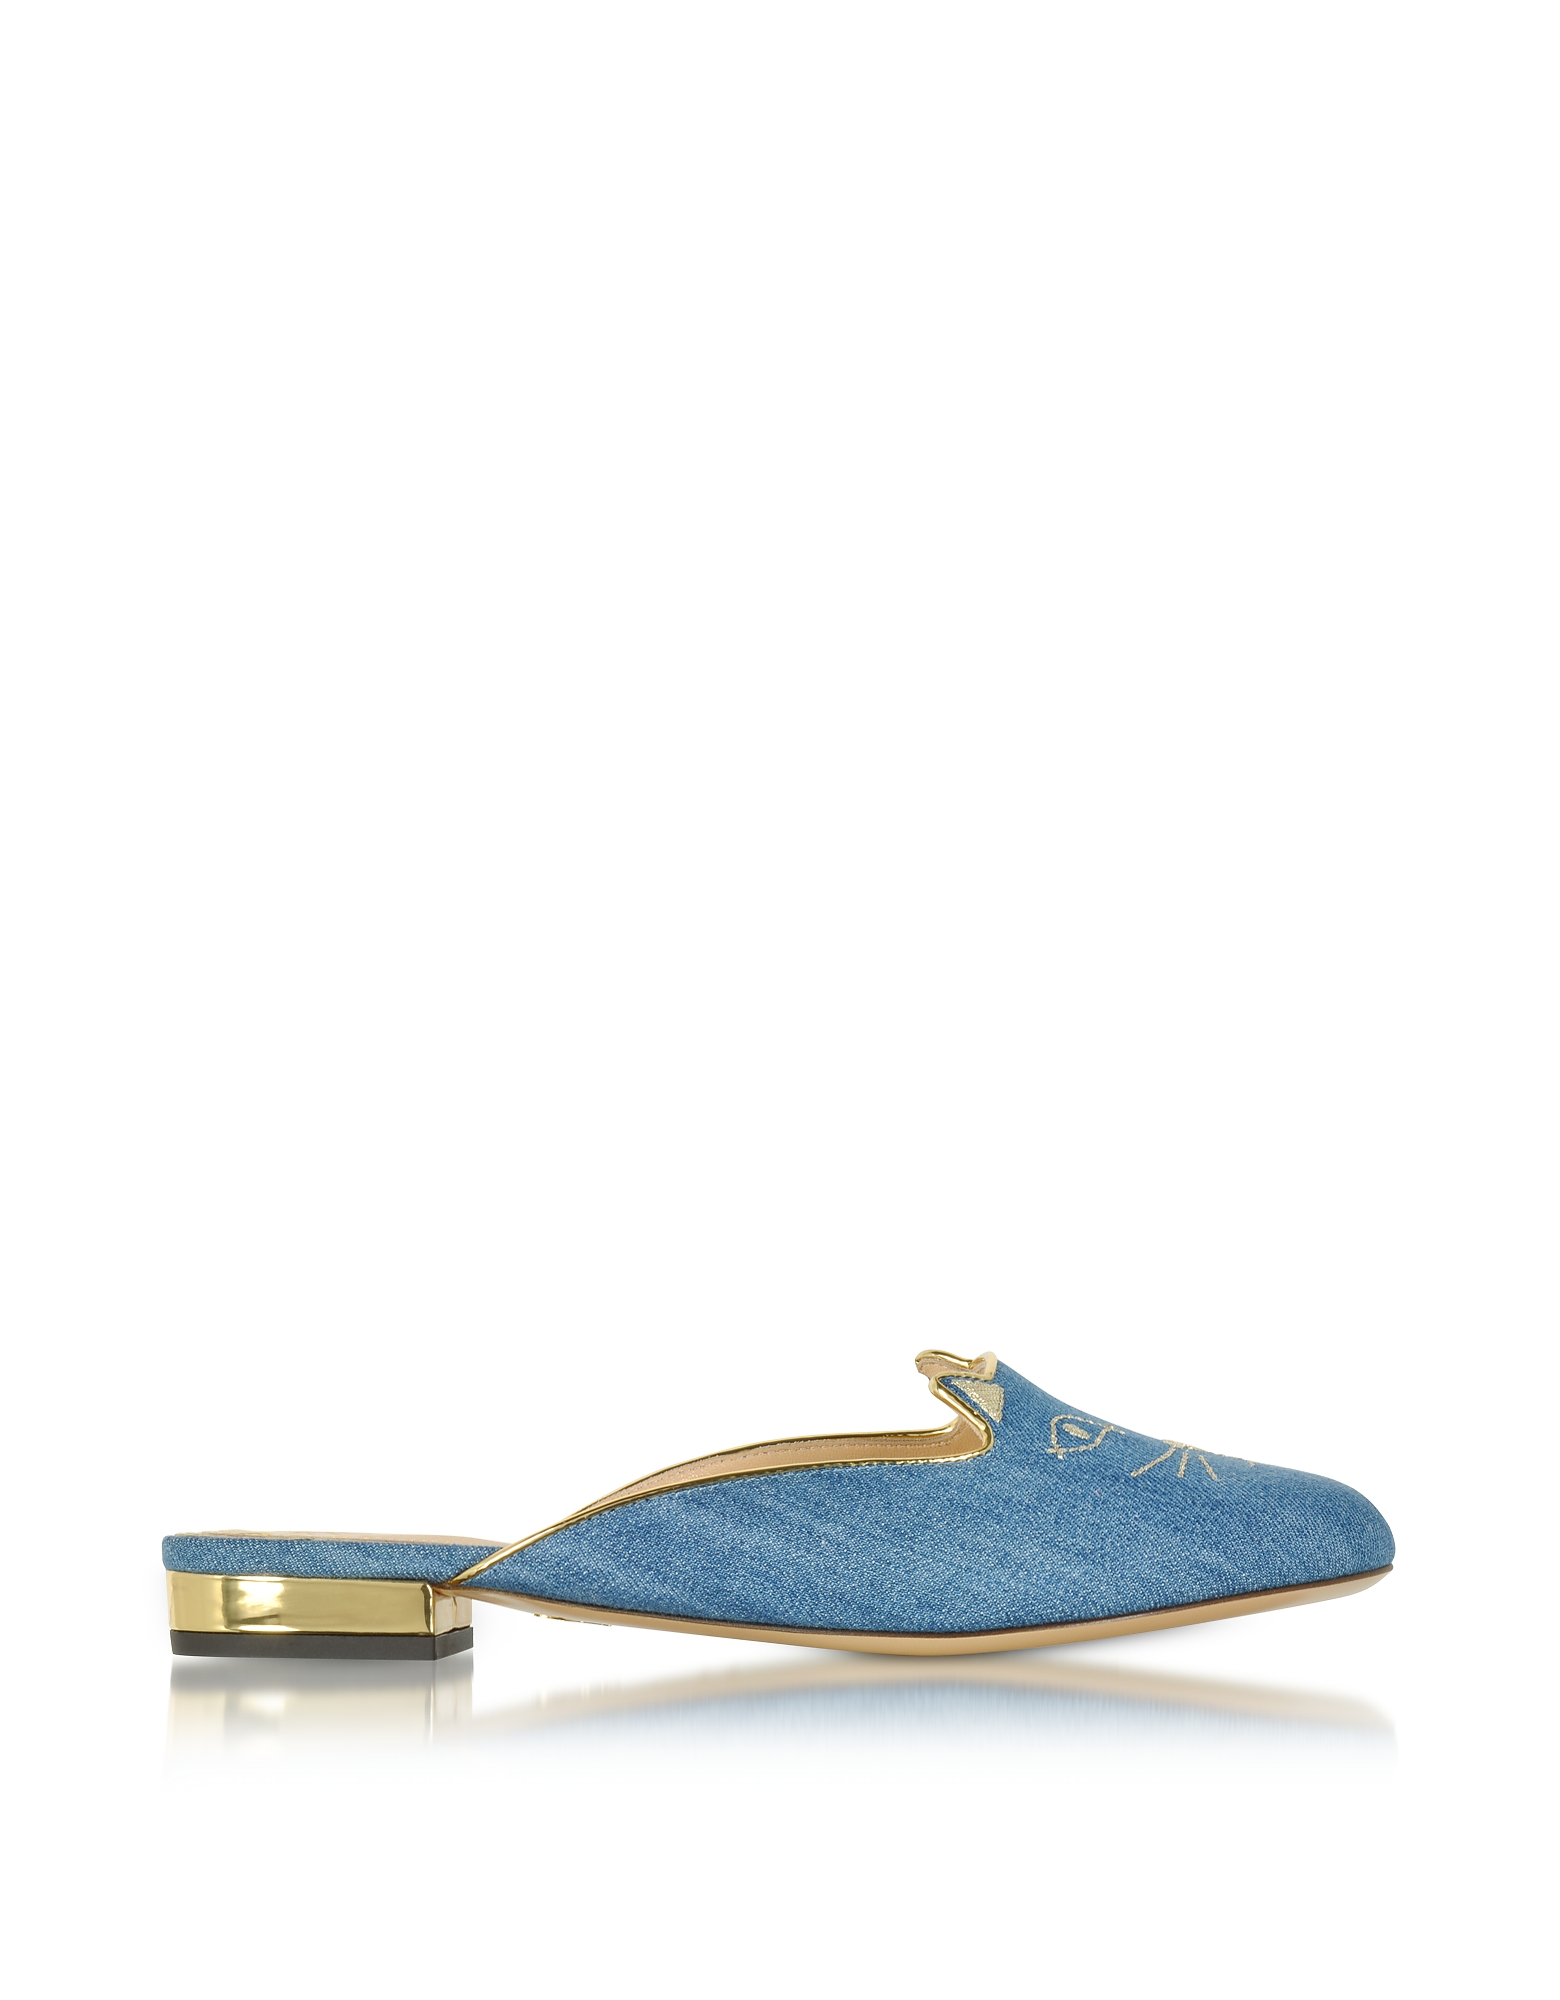 Charlotte Olympia Shoes, Light Denim & Gold Kitty Slippers